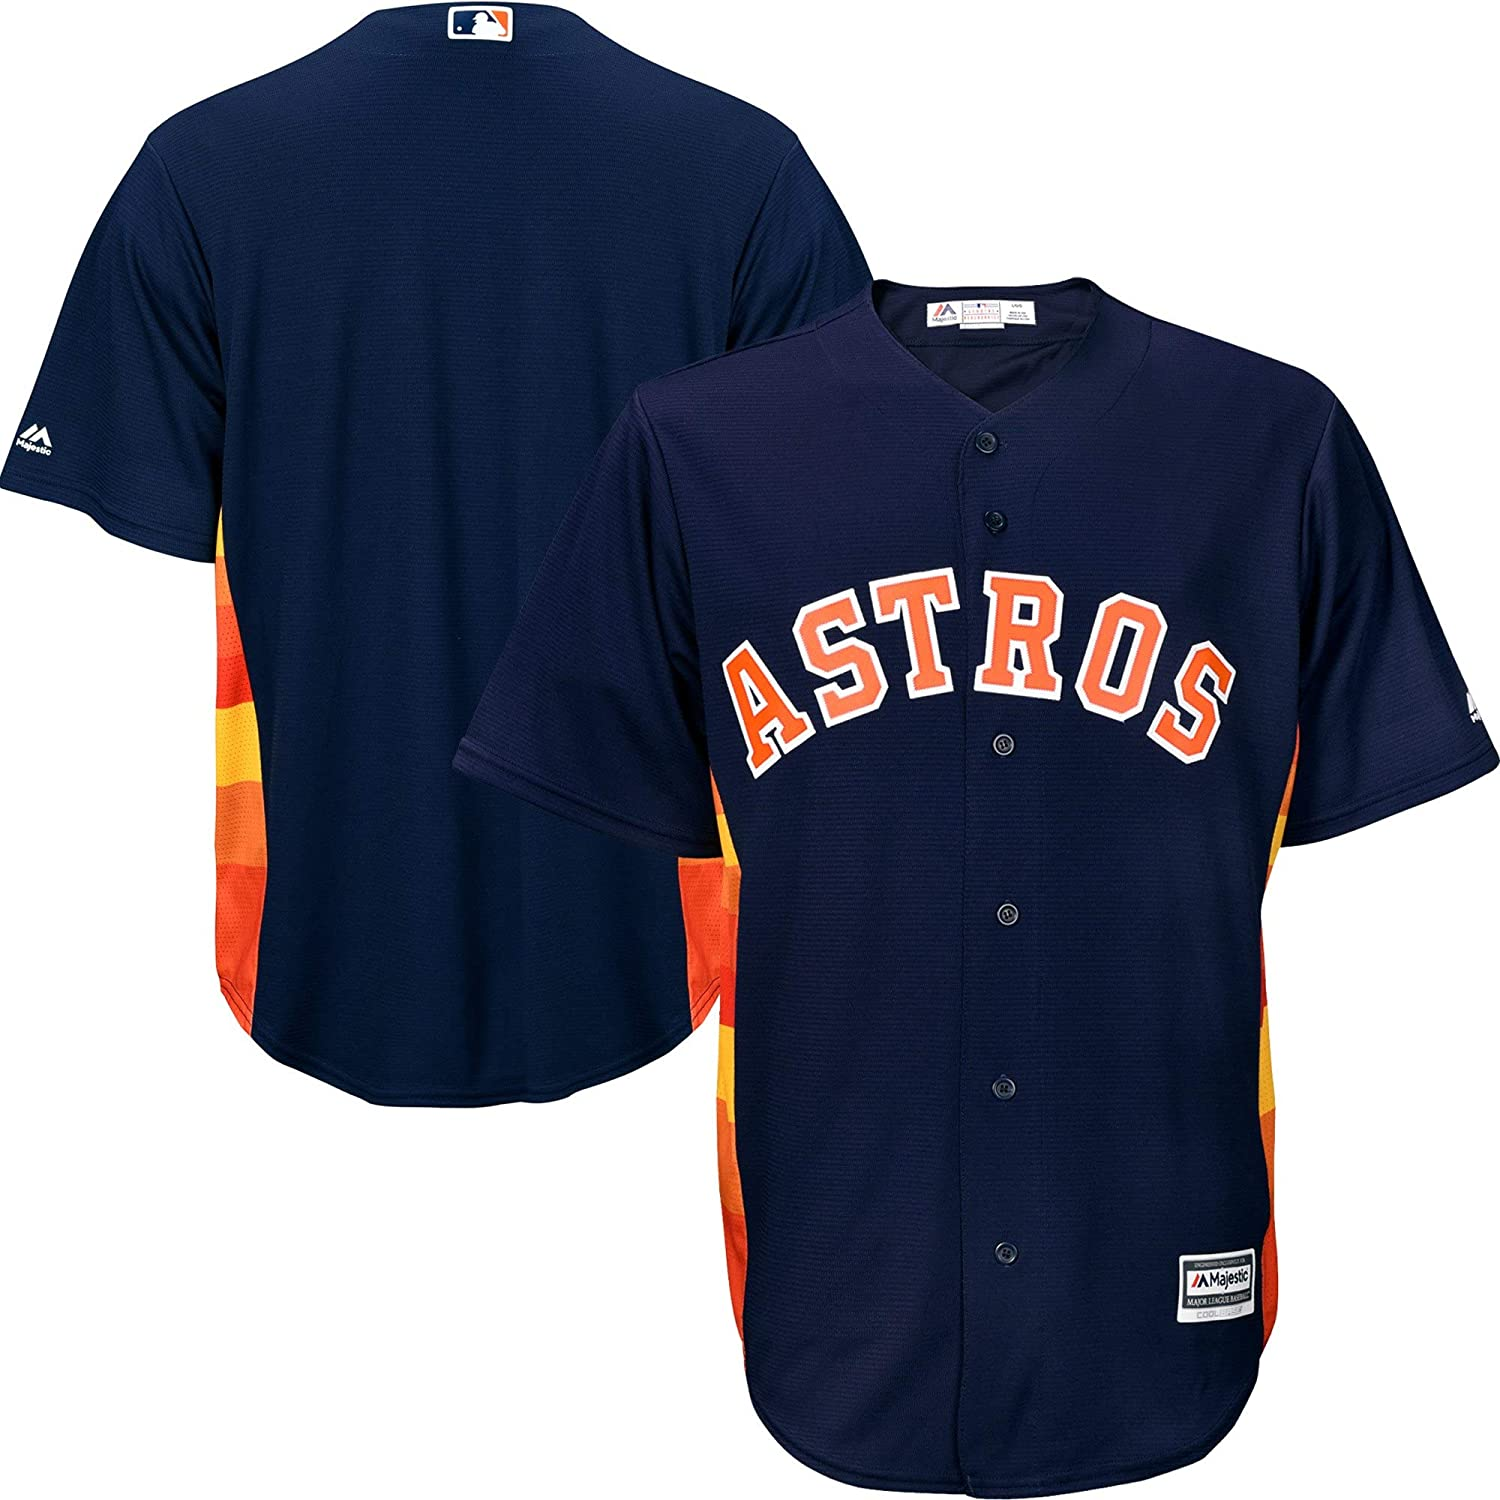 5c1ce0725 Amazon.com   Outerstuff Houston Astros Blank Navy Toddler Cool Base  Alternate Team Jersey   Sports   Outdoors